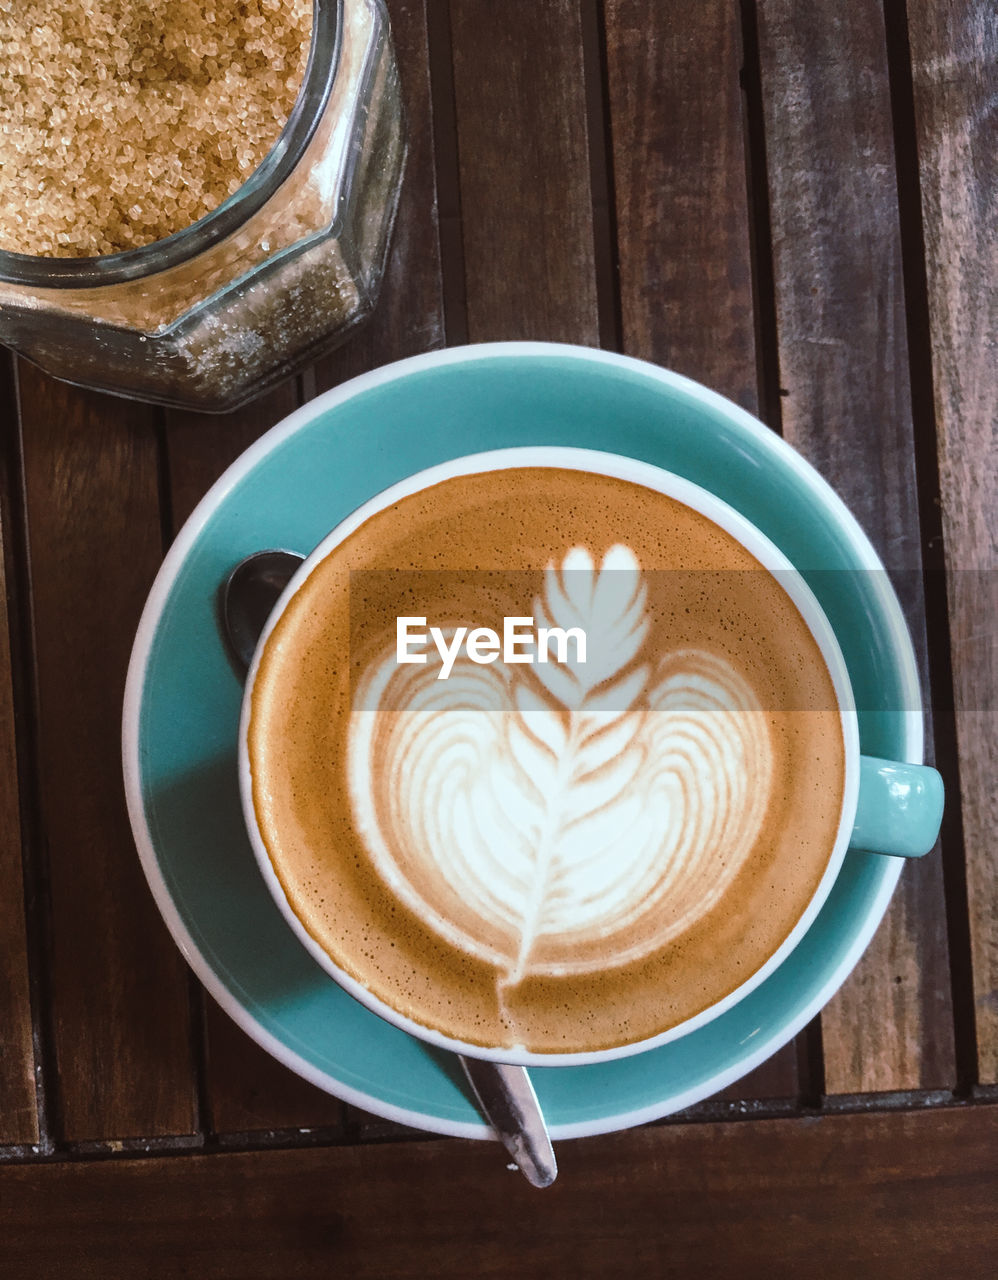 drink, food and drink, cup, refreshment, coffee - drink, frothy drink, coffee, coffee cup, table, mug, still life, hot drink, cappuccino, froth art, crockery, saucer, wood - material, freshness, food, directly above, no people, latte, non-alcoholic beverage, breakfast